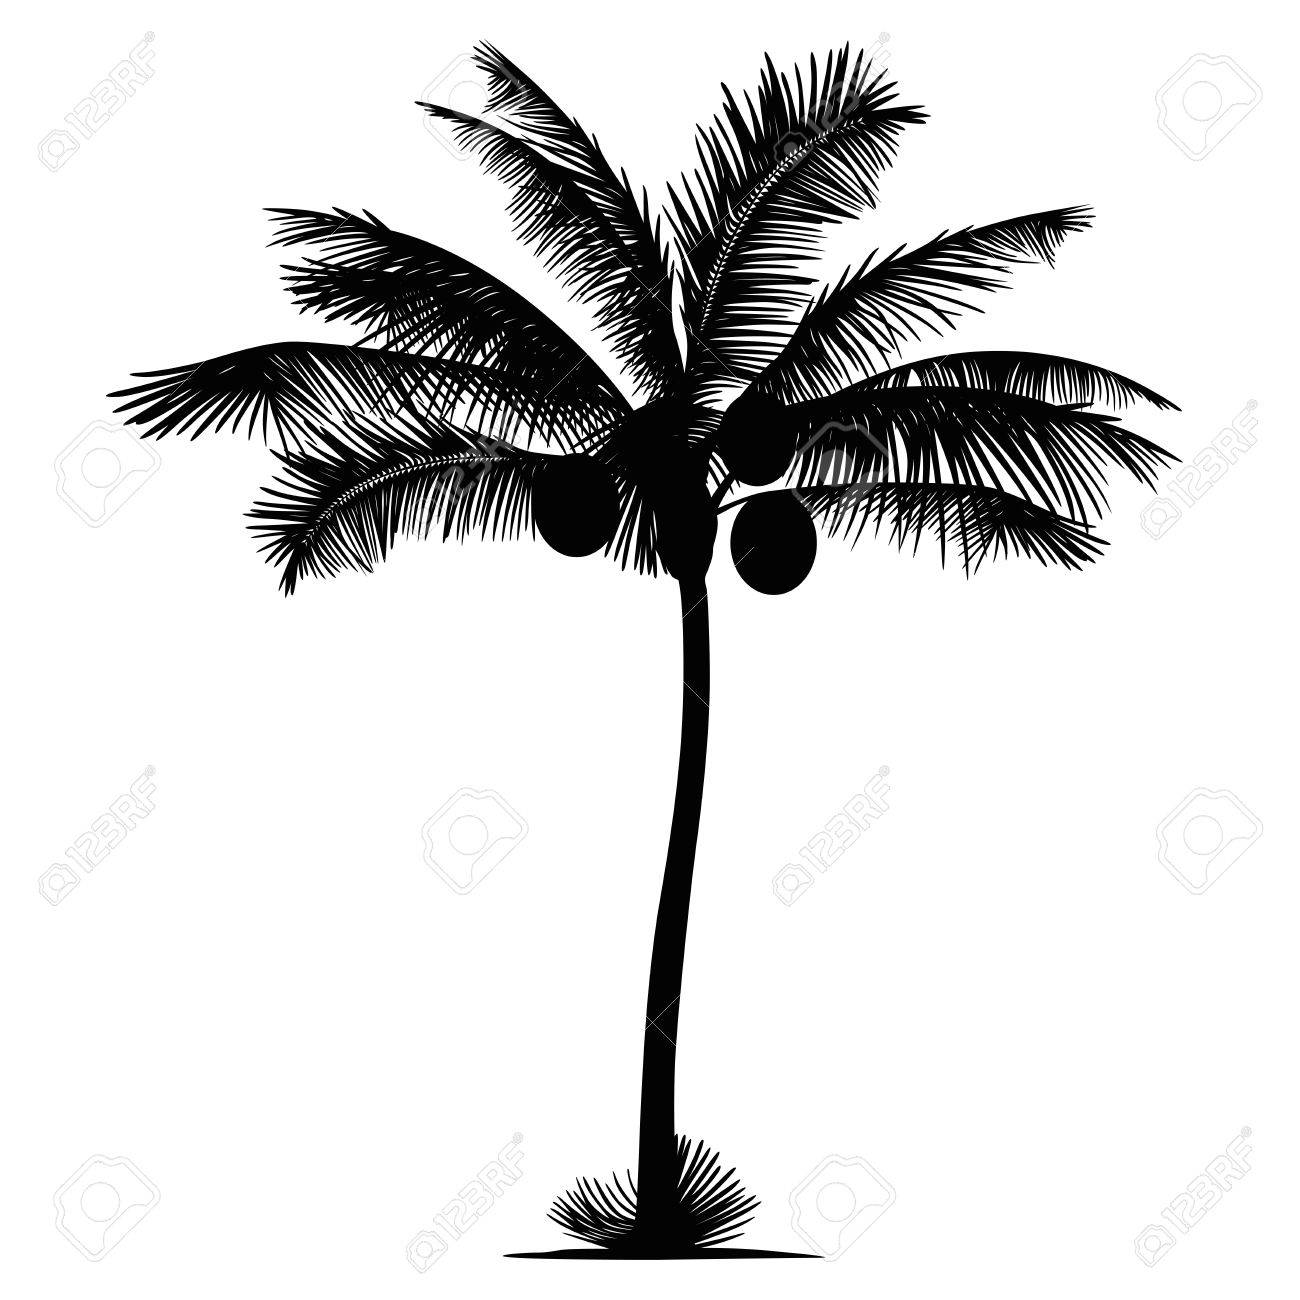 1300x1300 Palm Tree Coconut Silhouette Royalty Free Cliparts, Vectors,